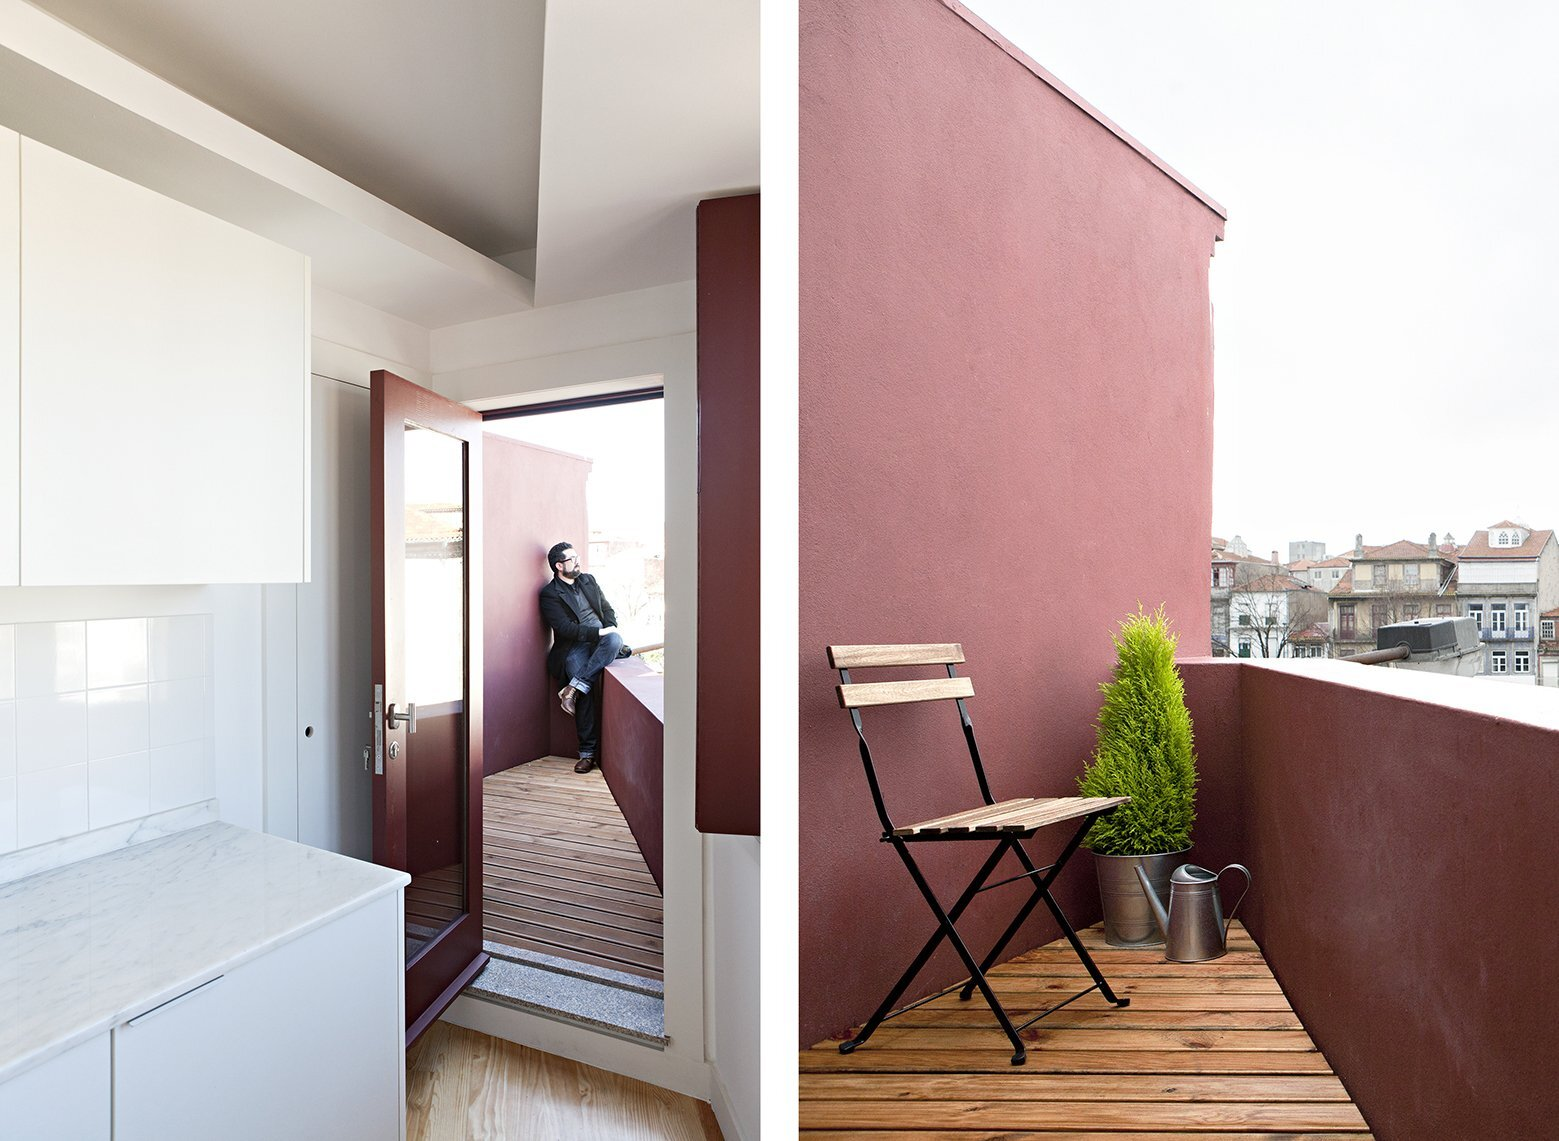 S. Victor Lofts - A2OFFICE - Portugal - Rooftop Deck - Humble Homes